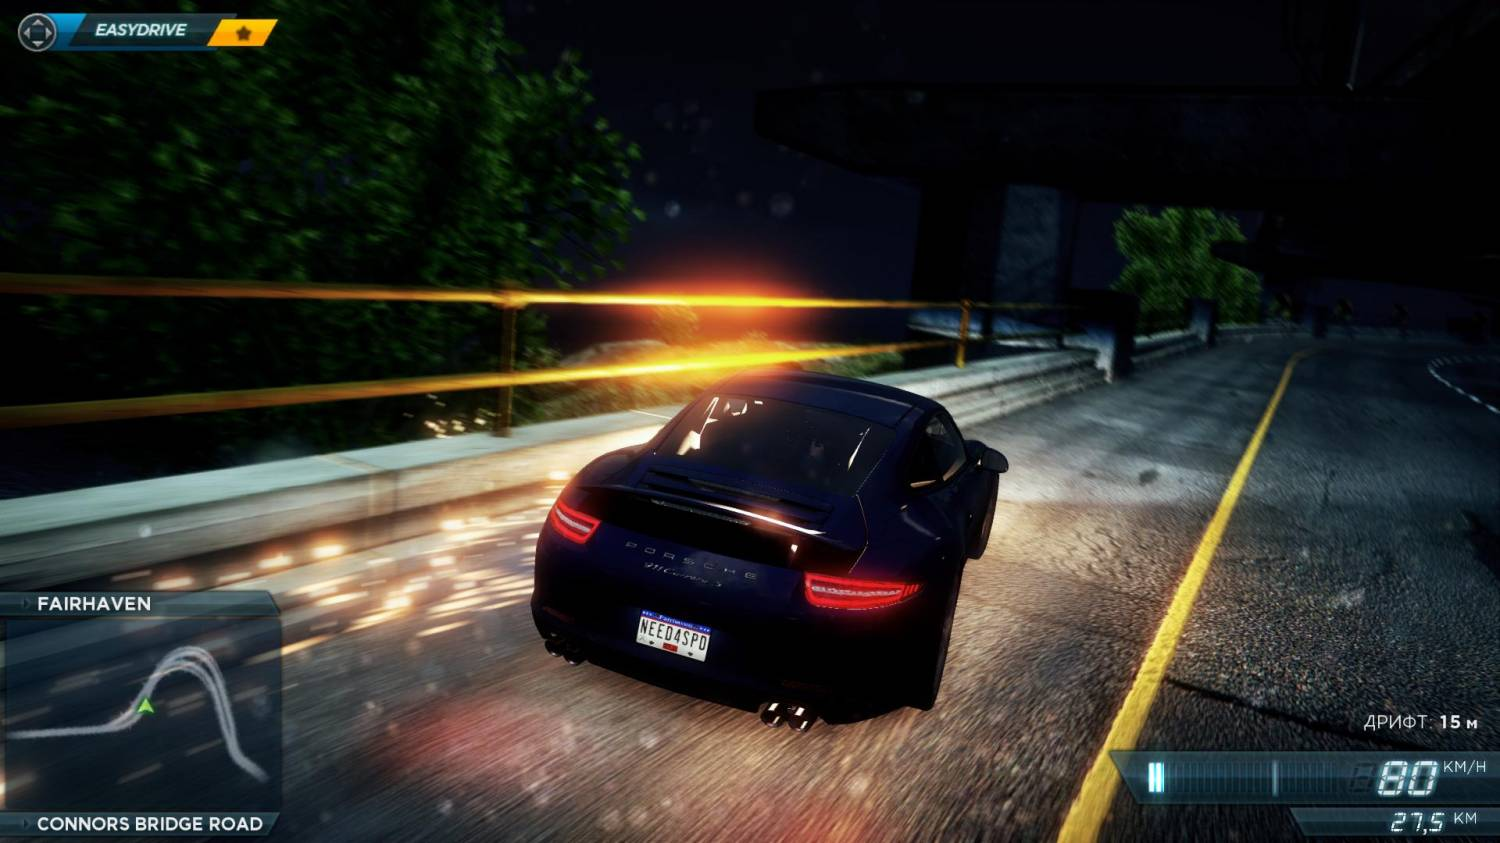 Need for speed most wanted 2012 трейнер - читы для NFS MW 2012